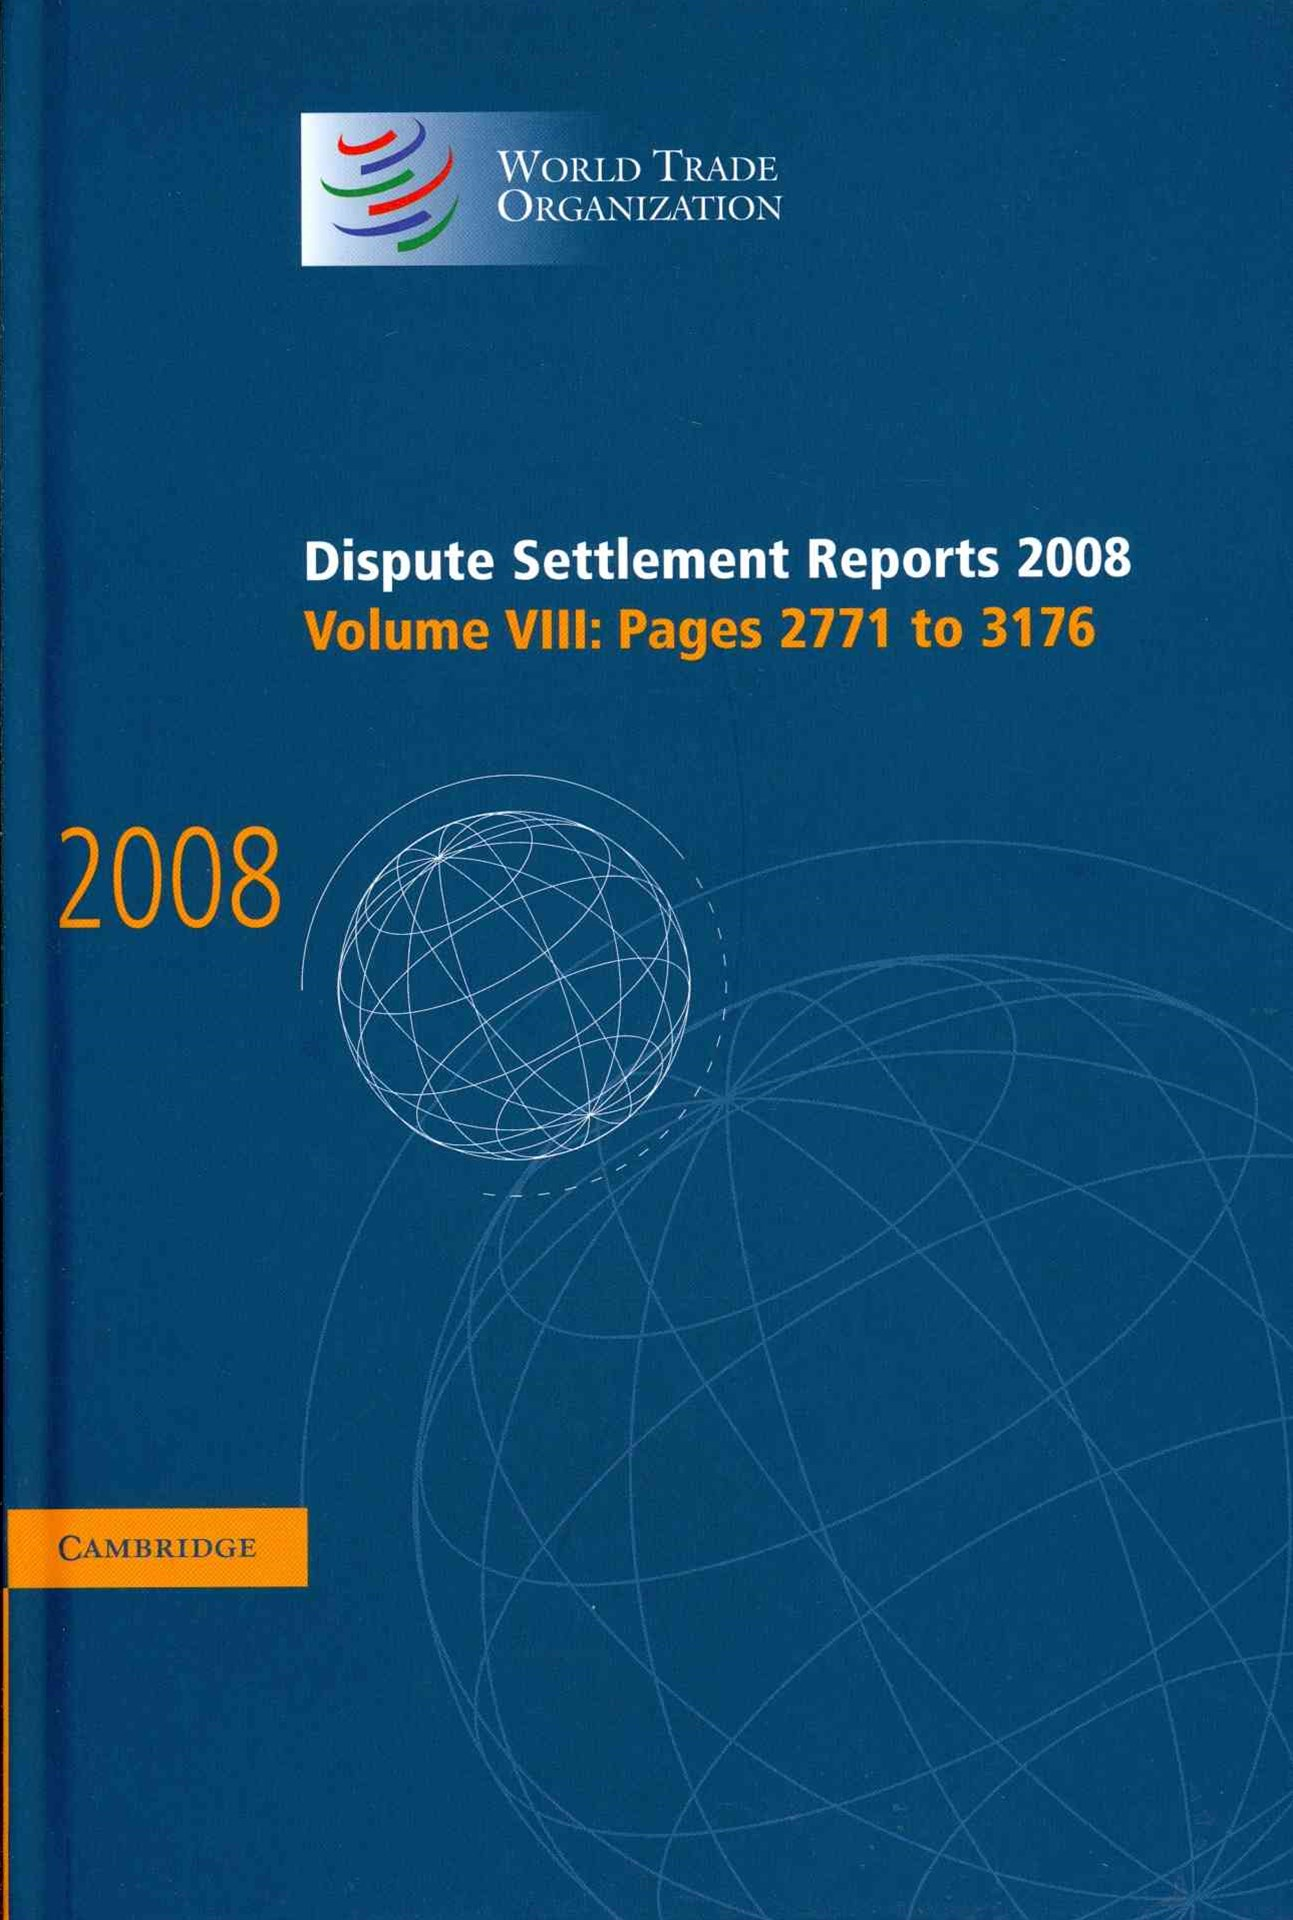 Dispute Settlement Reports 2008: Volume 8, Pages 2771-3176